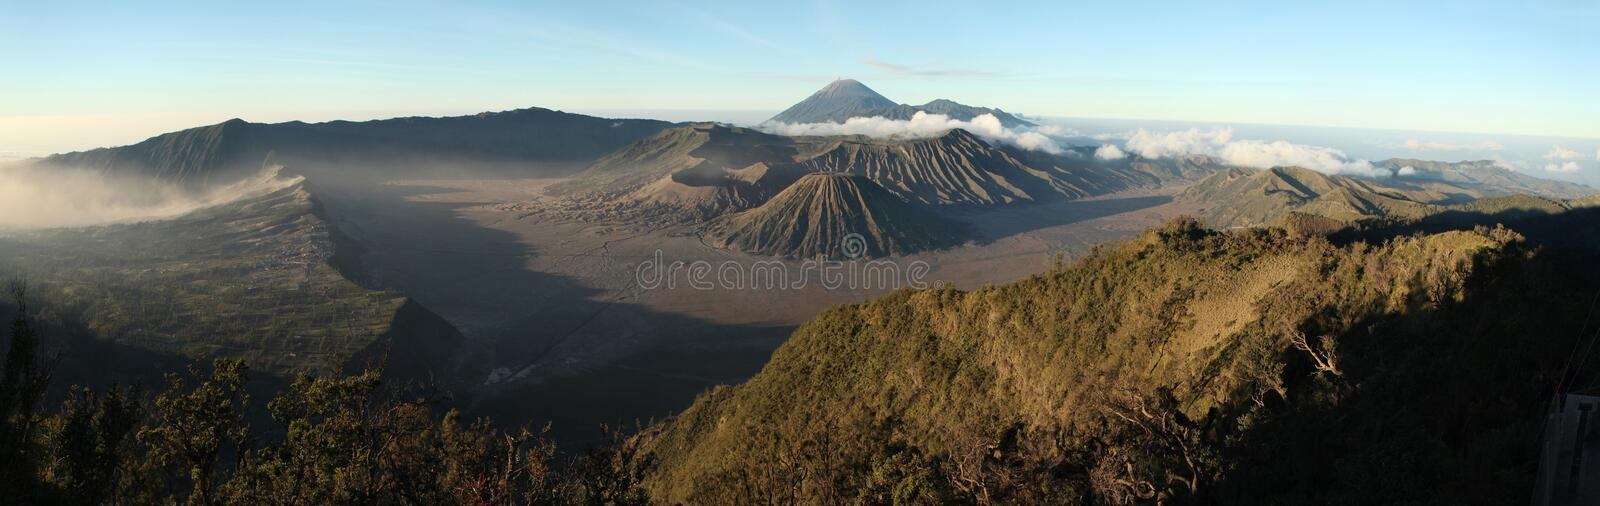 Sunrise over Mount Bromo and the Tengger Caldera in East Java, I. Sunrise over Mount Bromo (2,329 m) and the Tengger Caldera in East Java, Indonesia. Panorama royalty free stock image